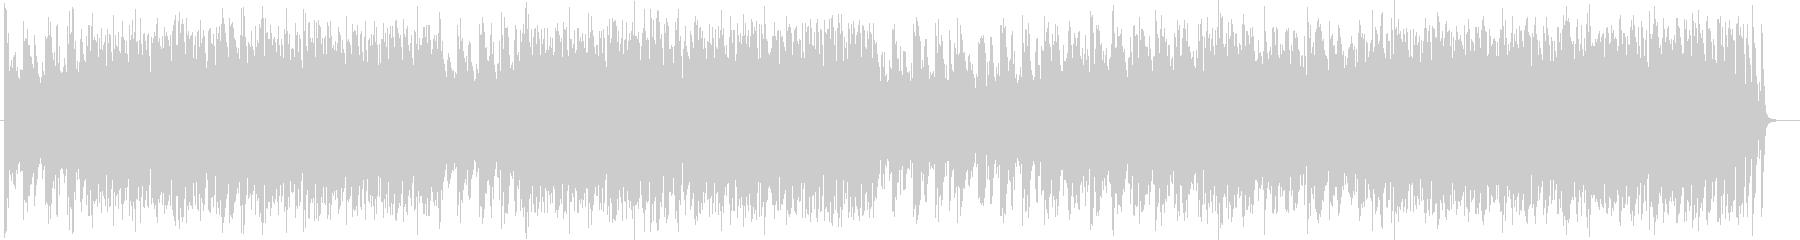 Nearly futuristic melodious synthein song's unreproduced waveform